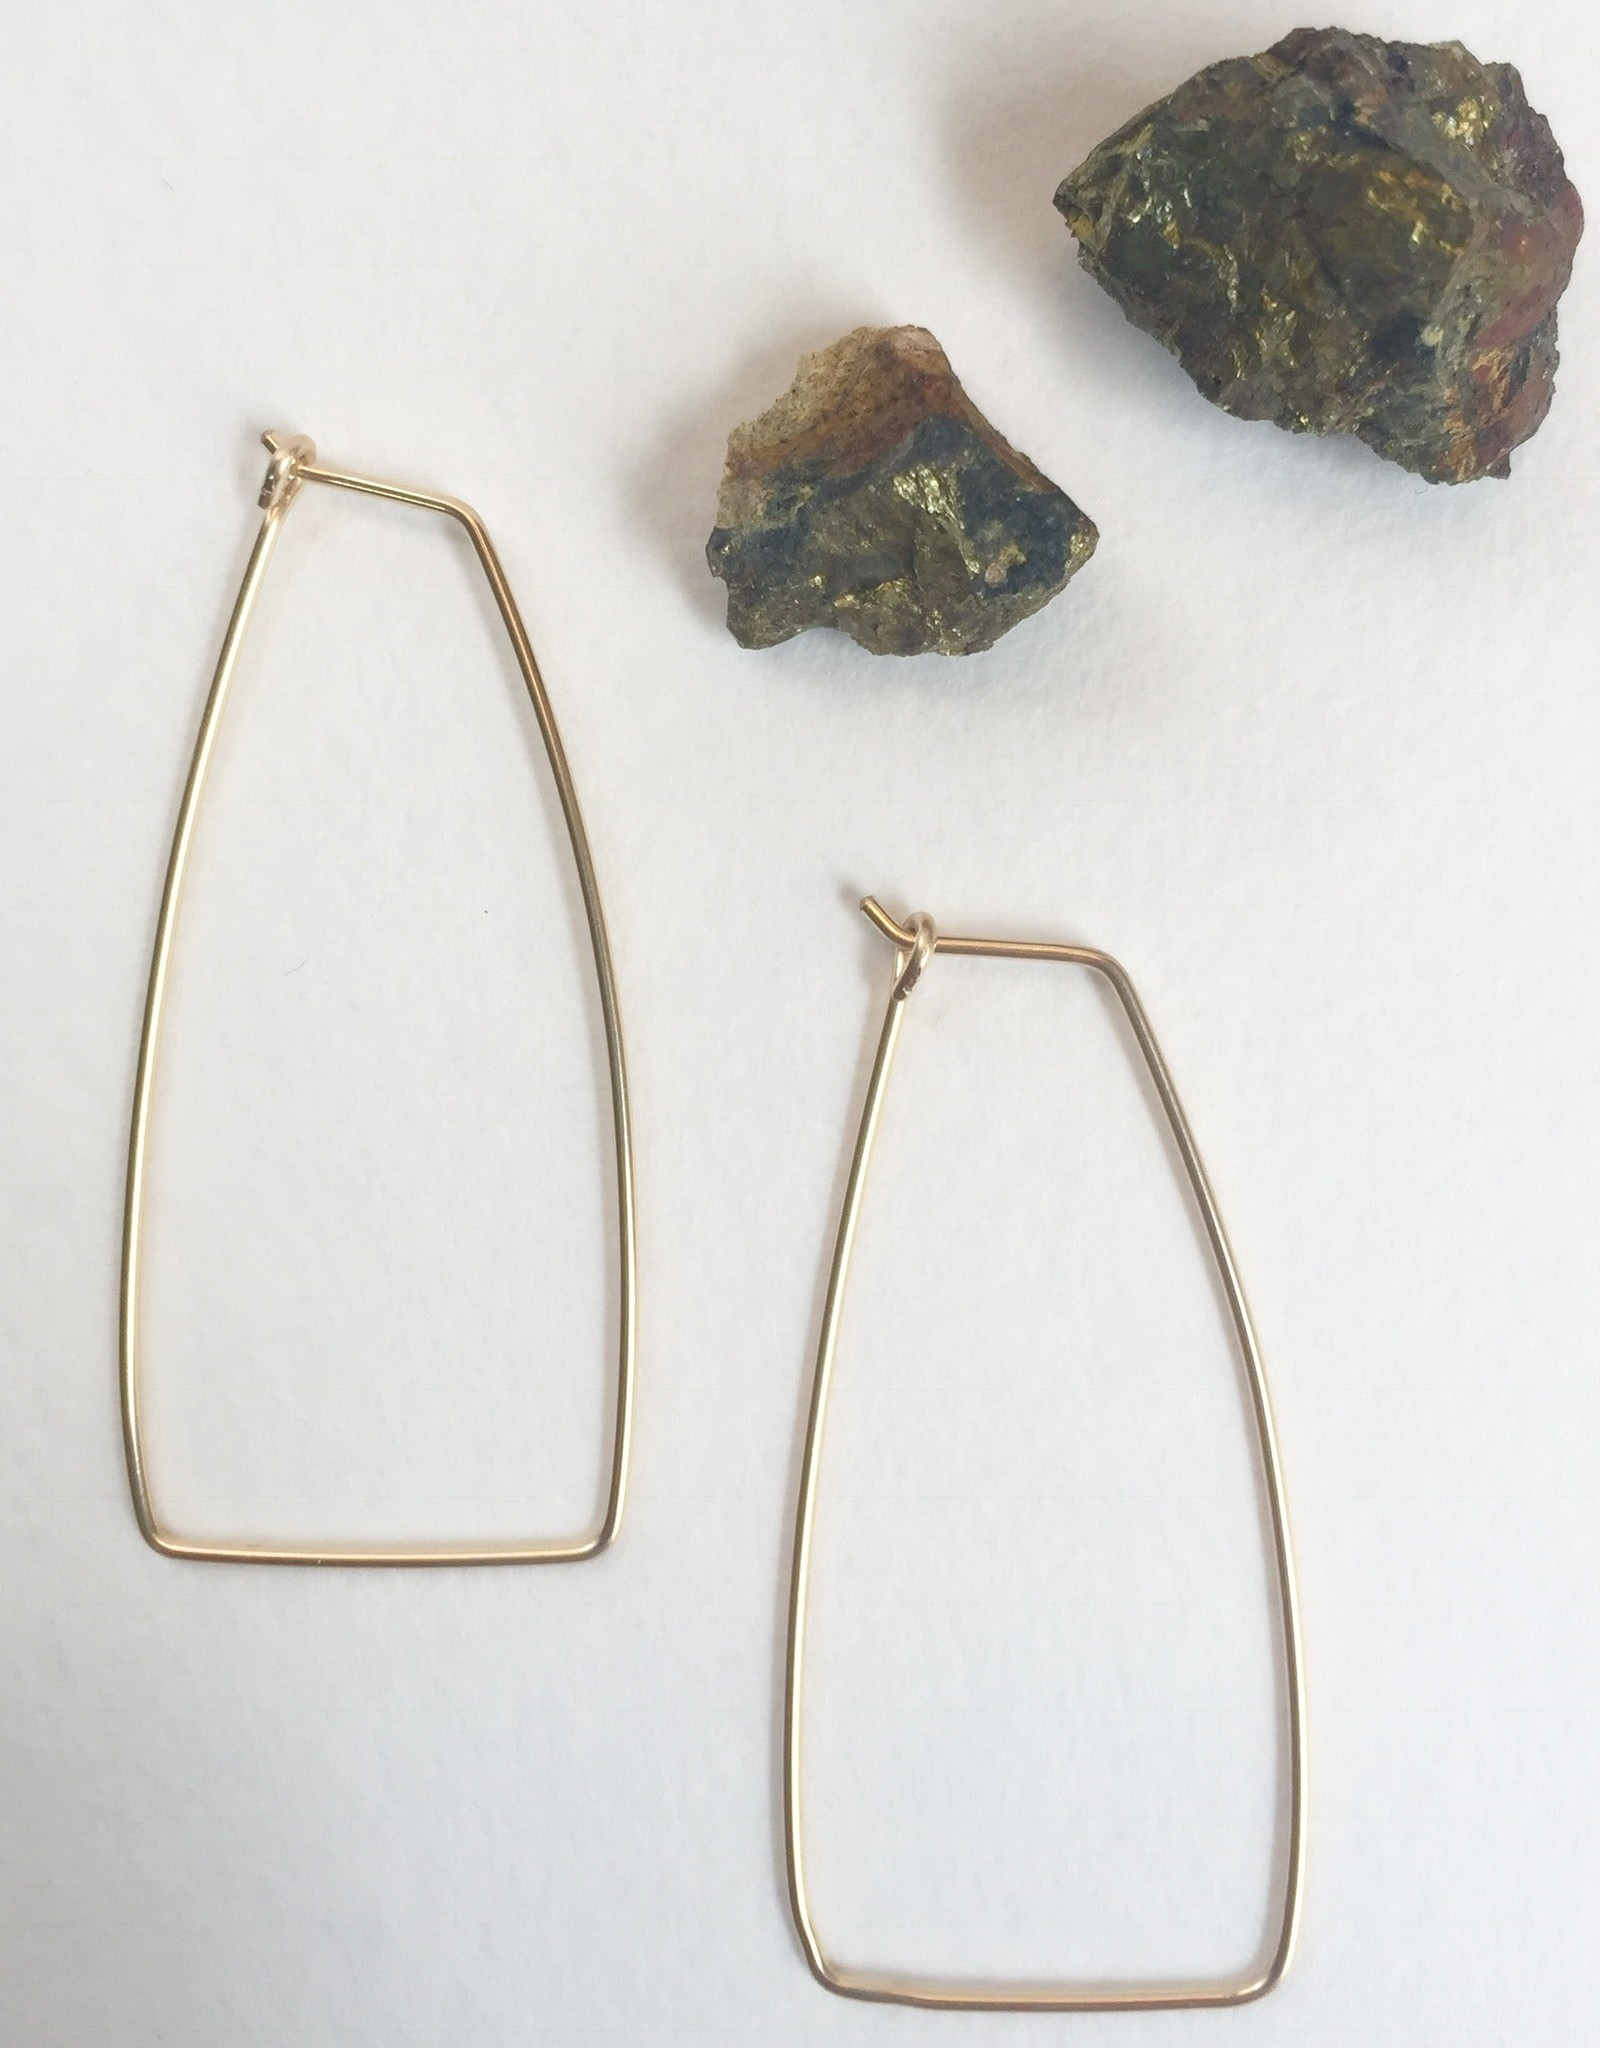 EARRING LAURA ROUND ELONGATED TRAPEZOID HOOP